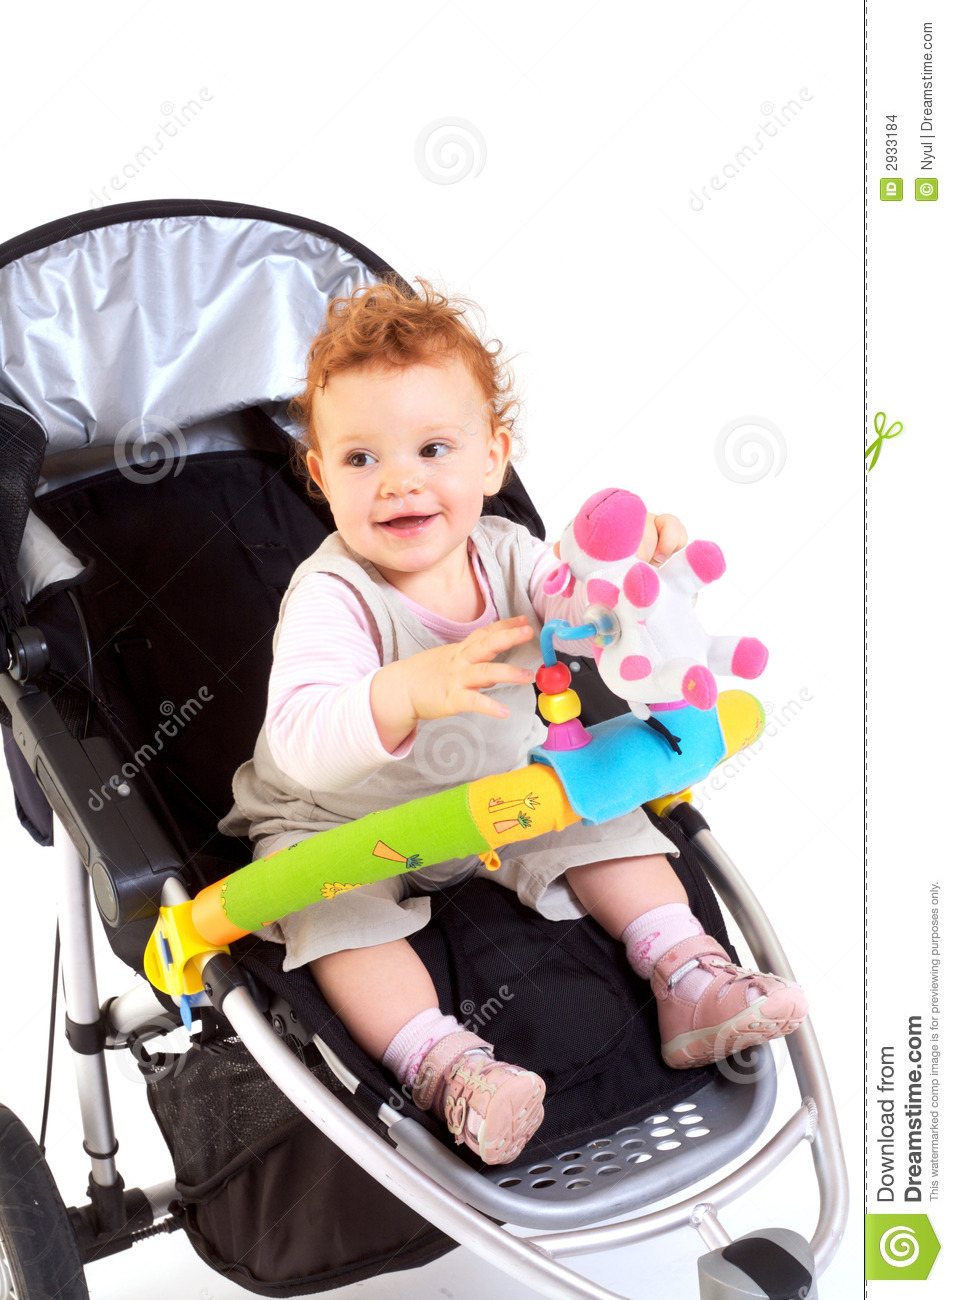 Happy Baby In Stroller Stock Images - Image: 2933184